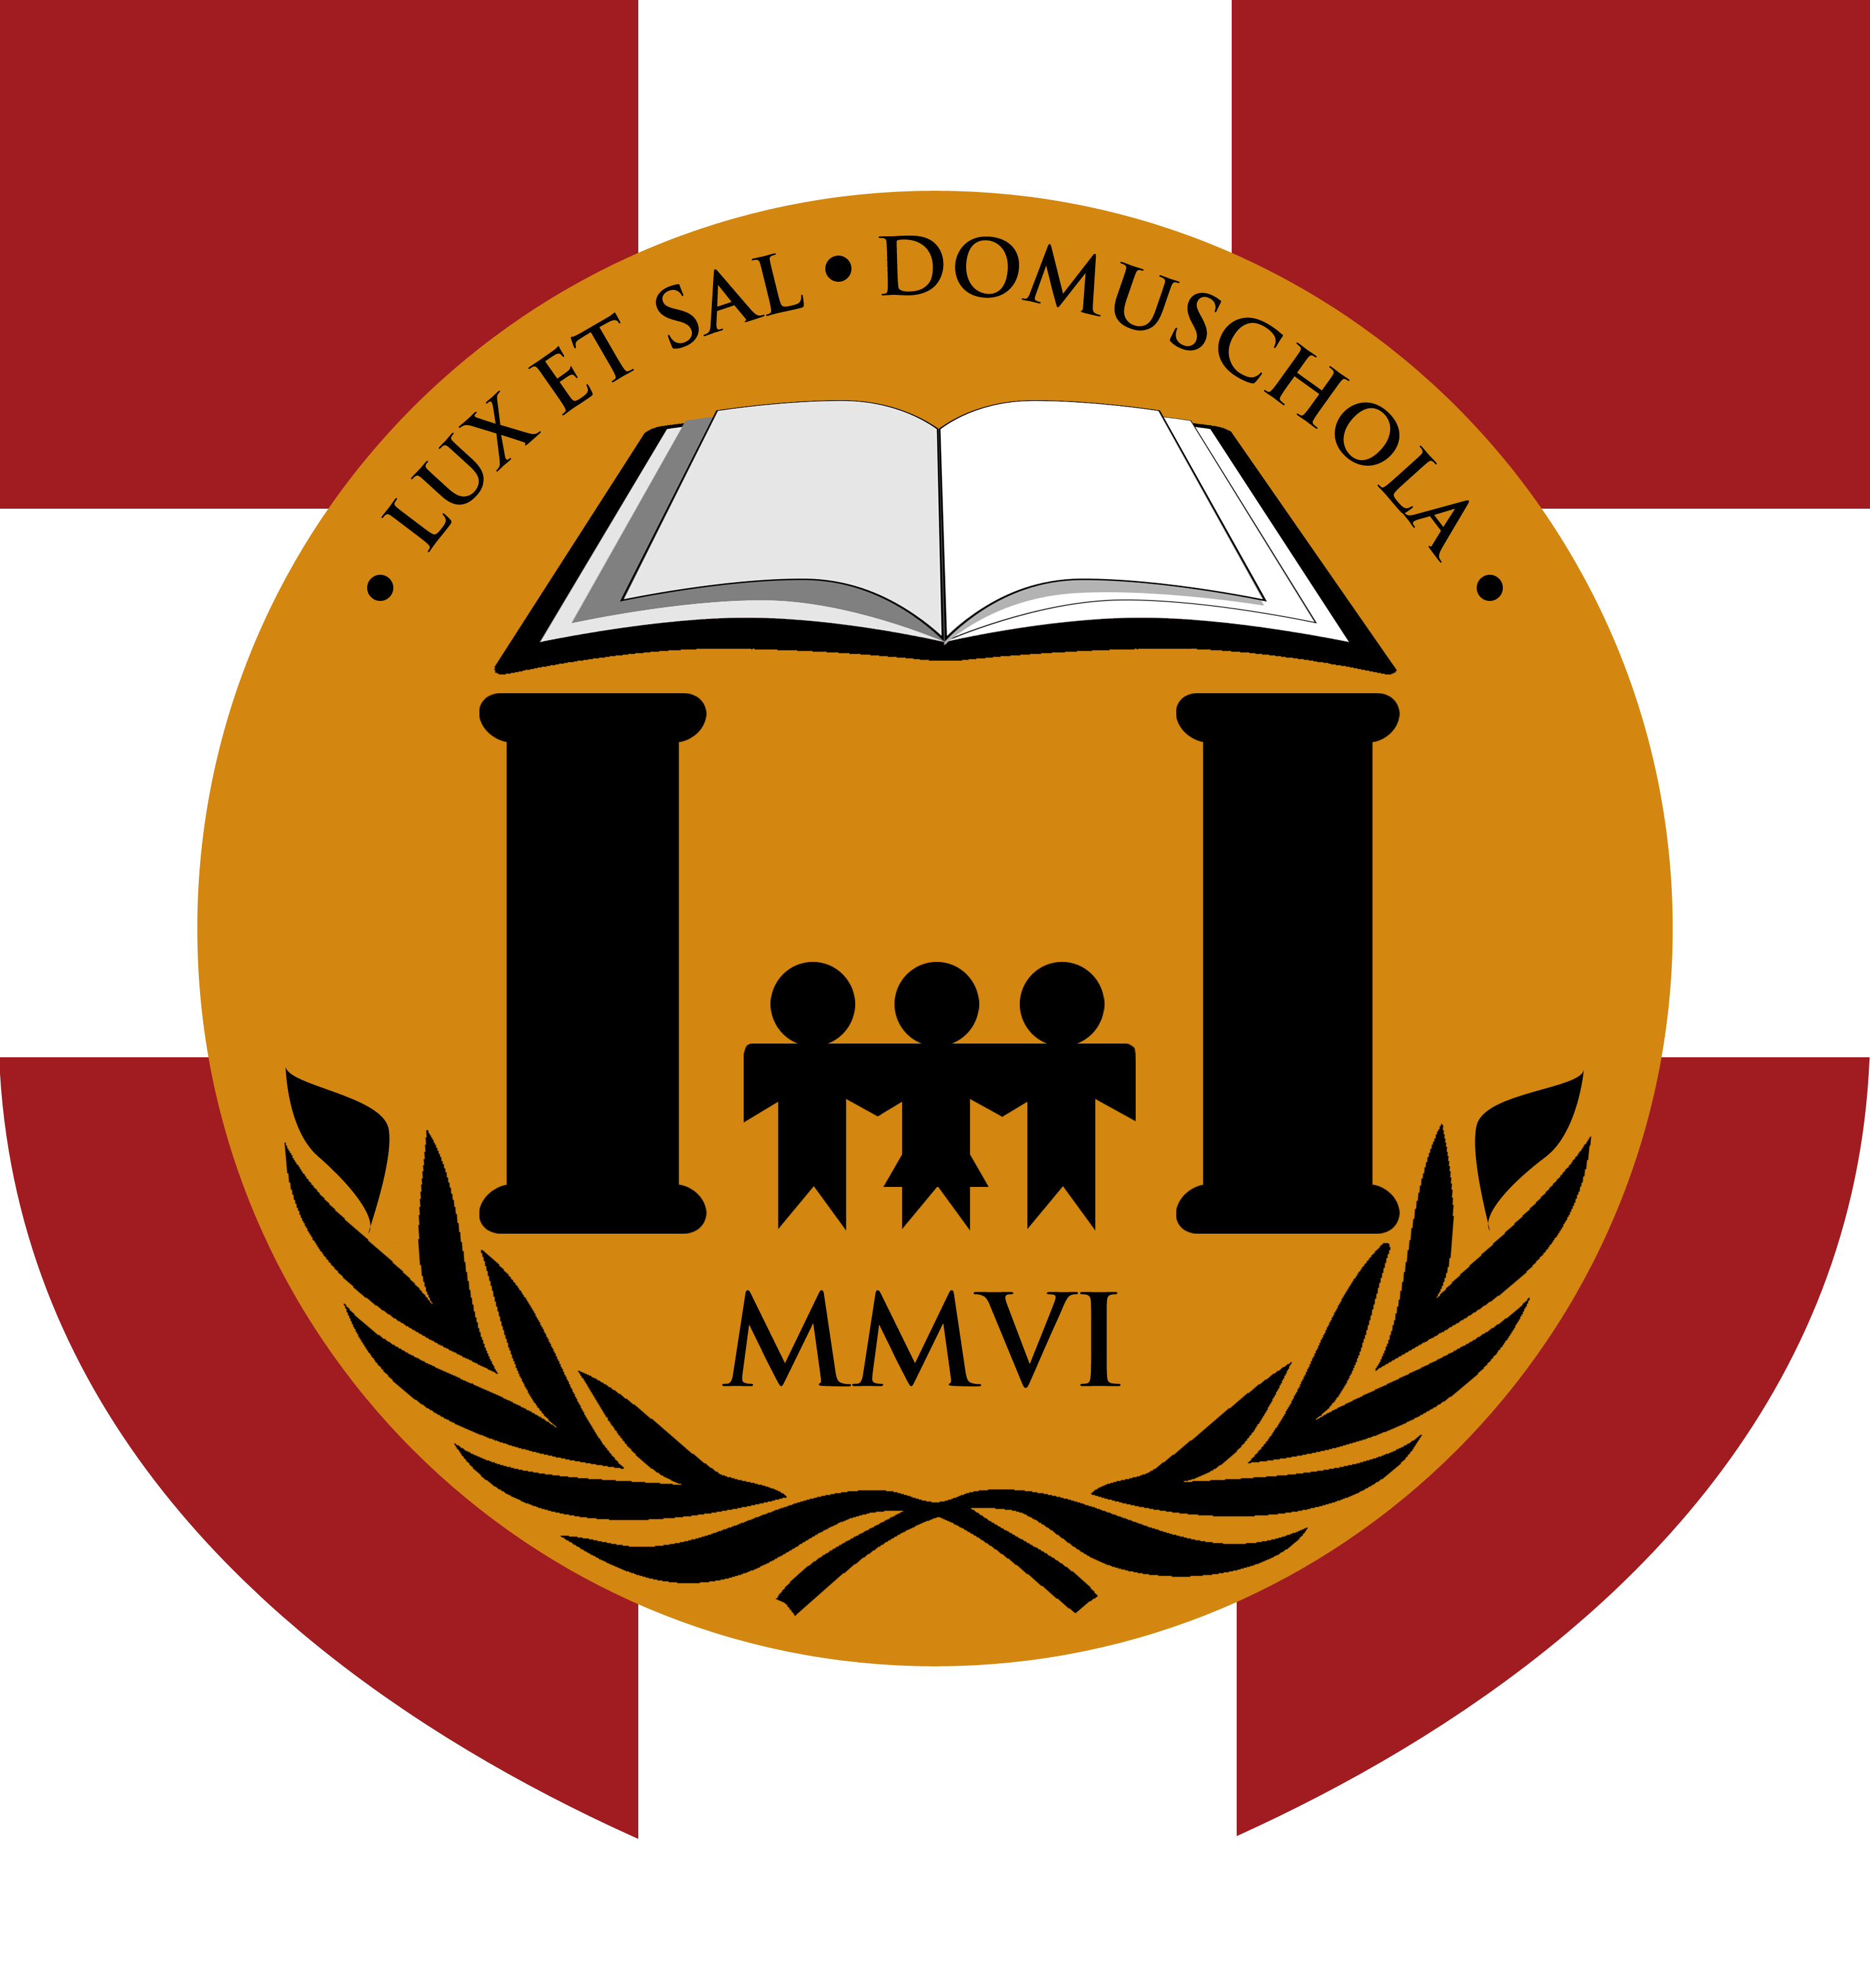 Domuschola International School Logo